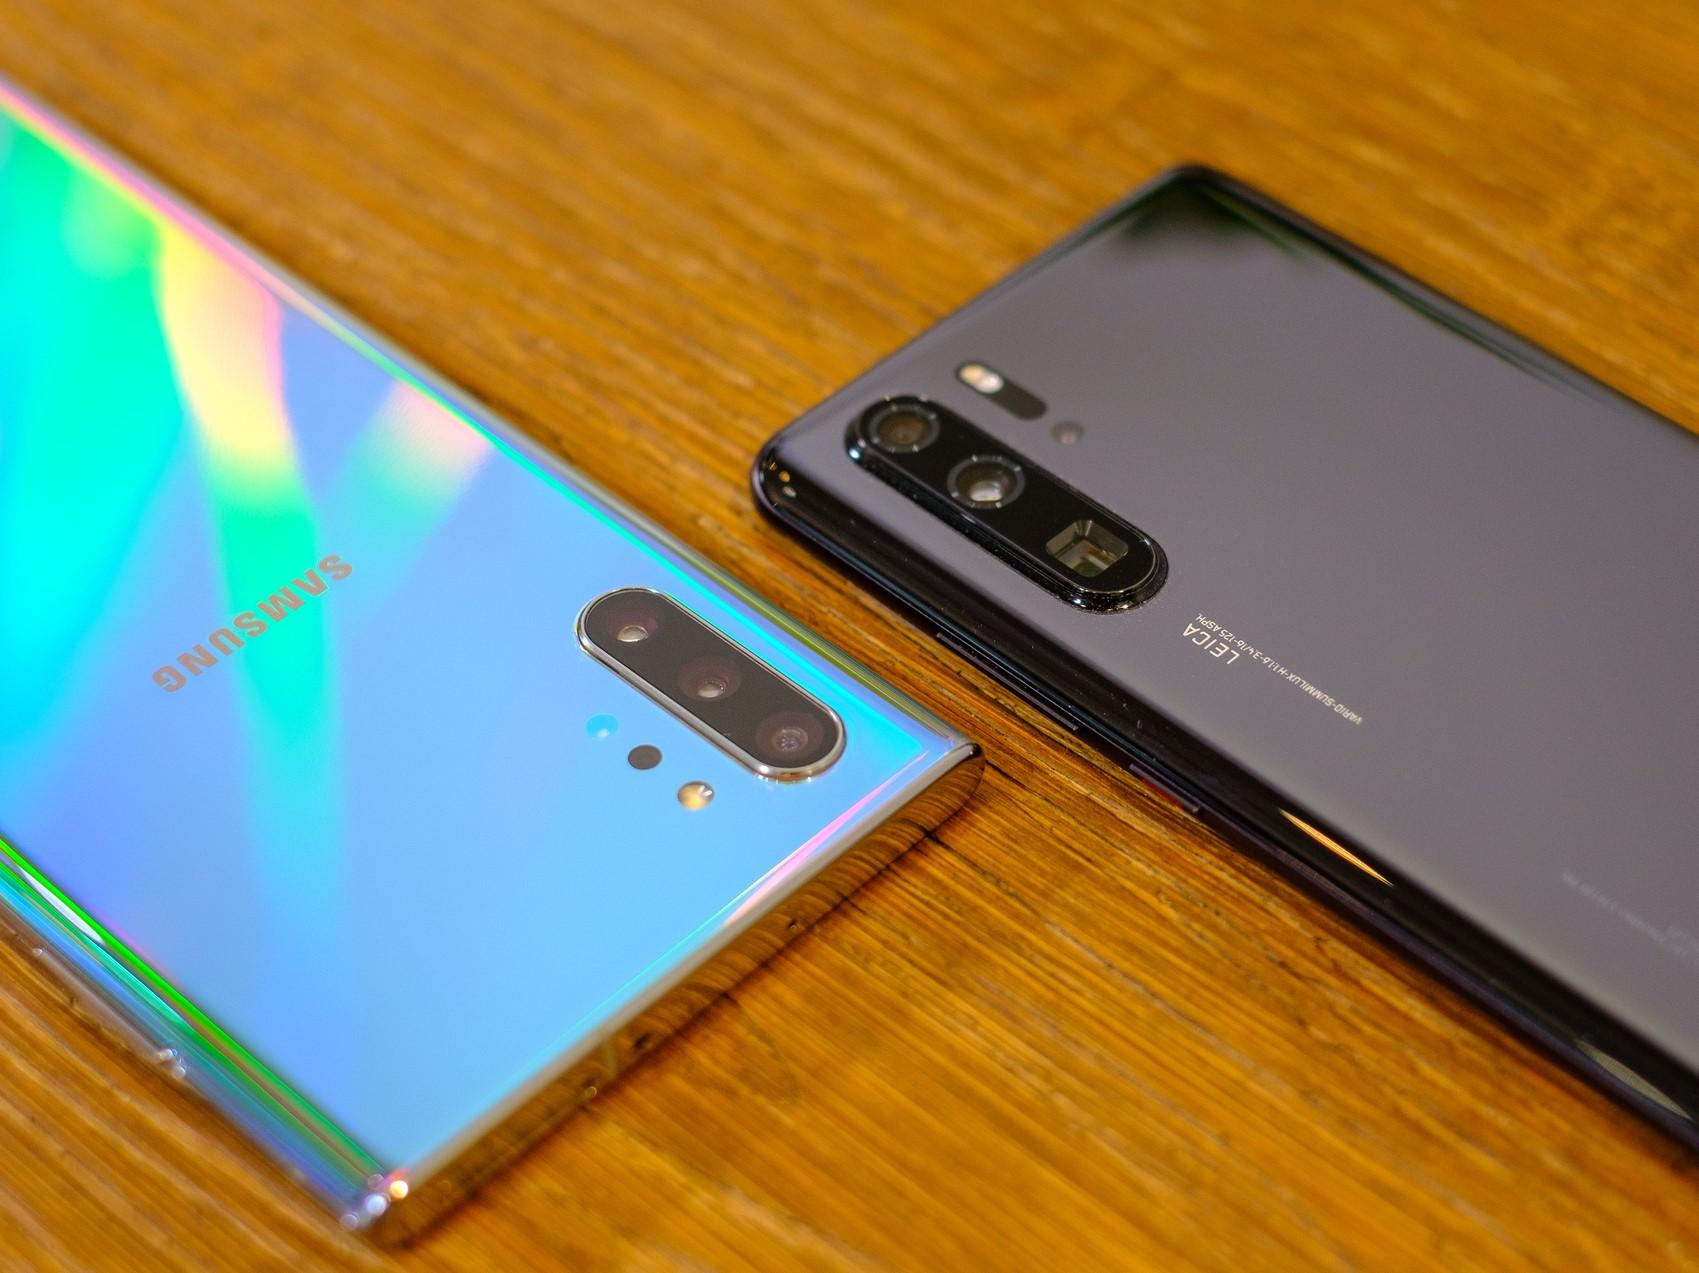 Huawei Overtakes Samsung To Become World S Biggest Smartphone Maker For The First Time The Independent The Independent Check full specifications of huawei y7p mobile with its features reviews comparison bd price rating at mobilebd. huawei overtakes samsung to become